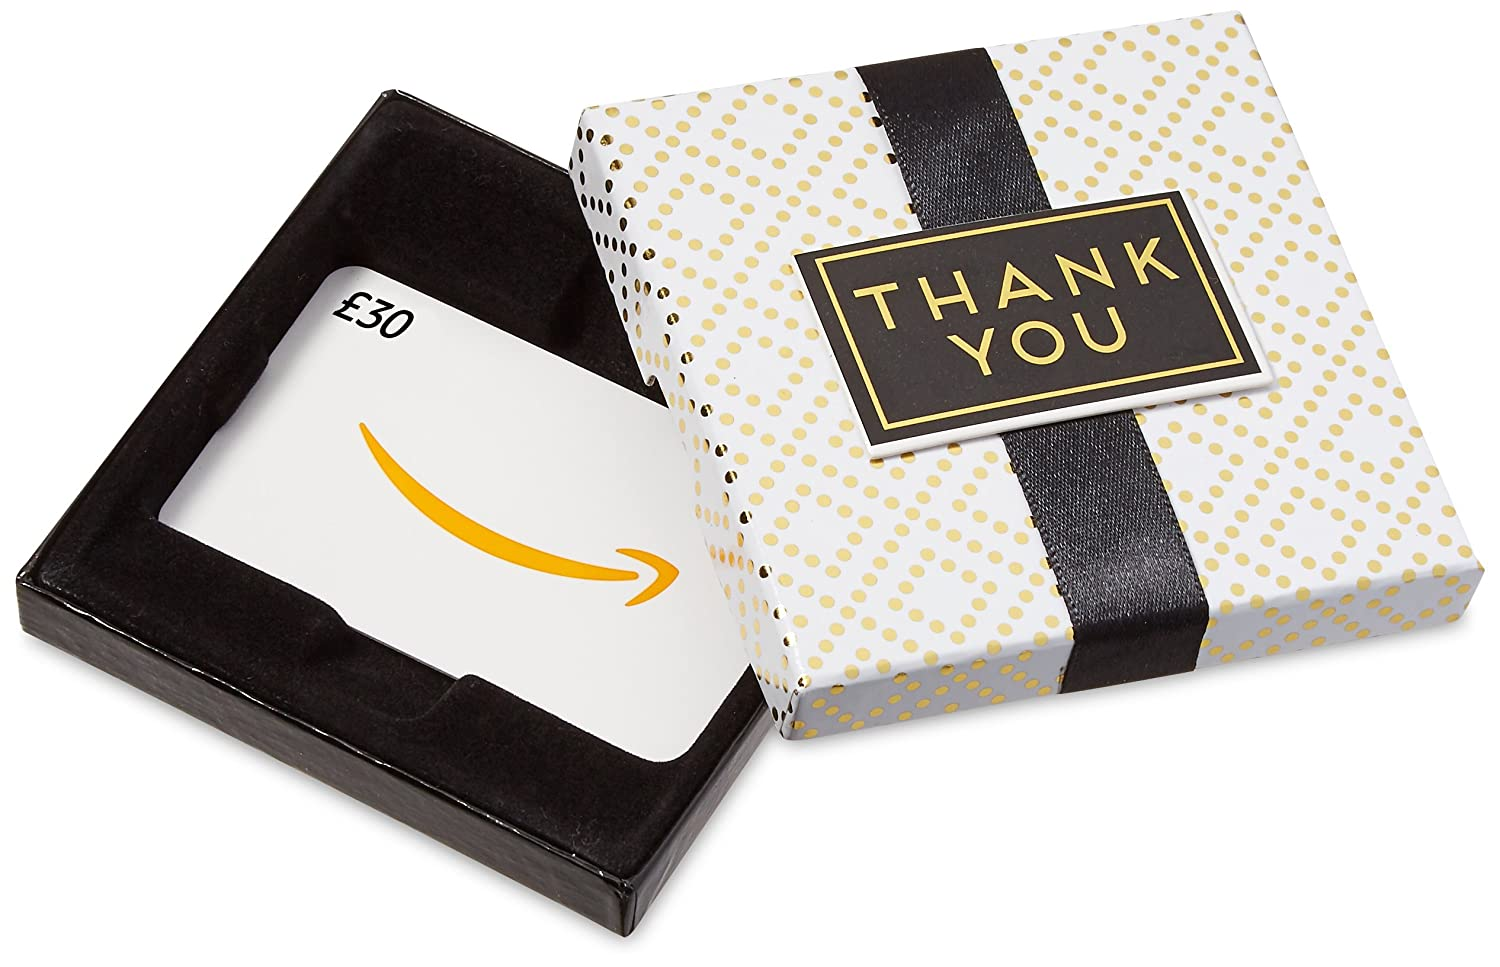 Amazon.co.uk Gift Card - In a Gift Box (Thank You) - FREE One-Day Delivery Amazon EU S.à.r.l. Fixed